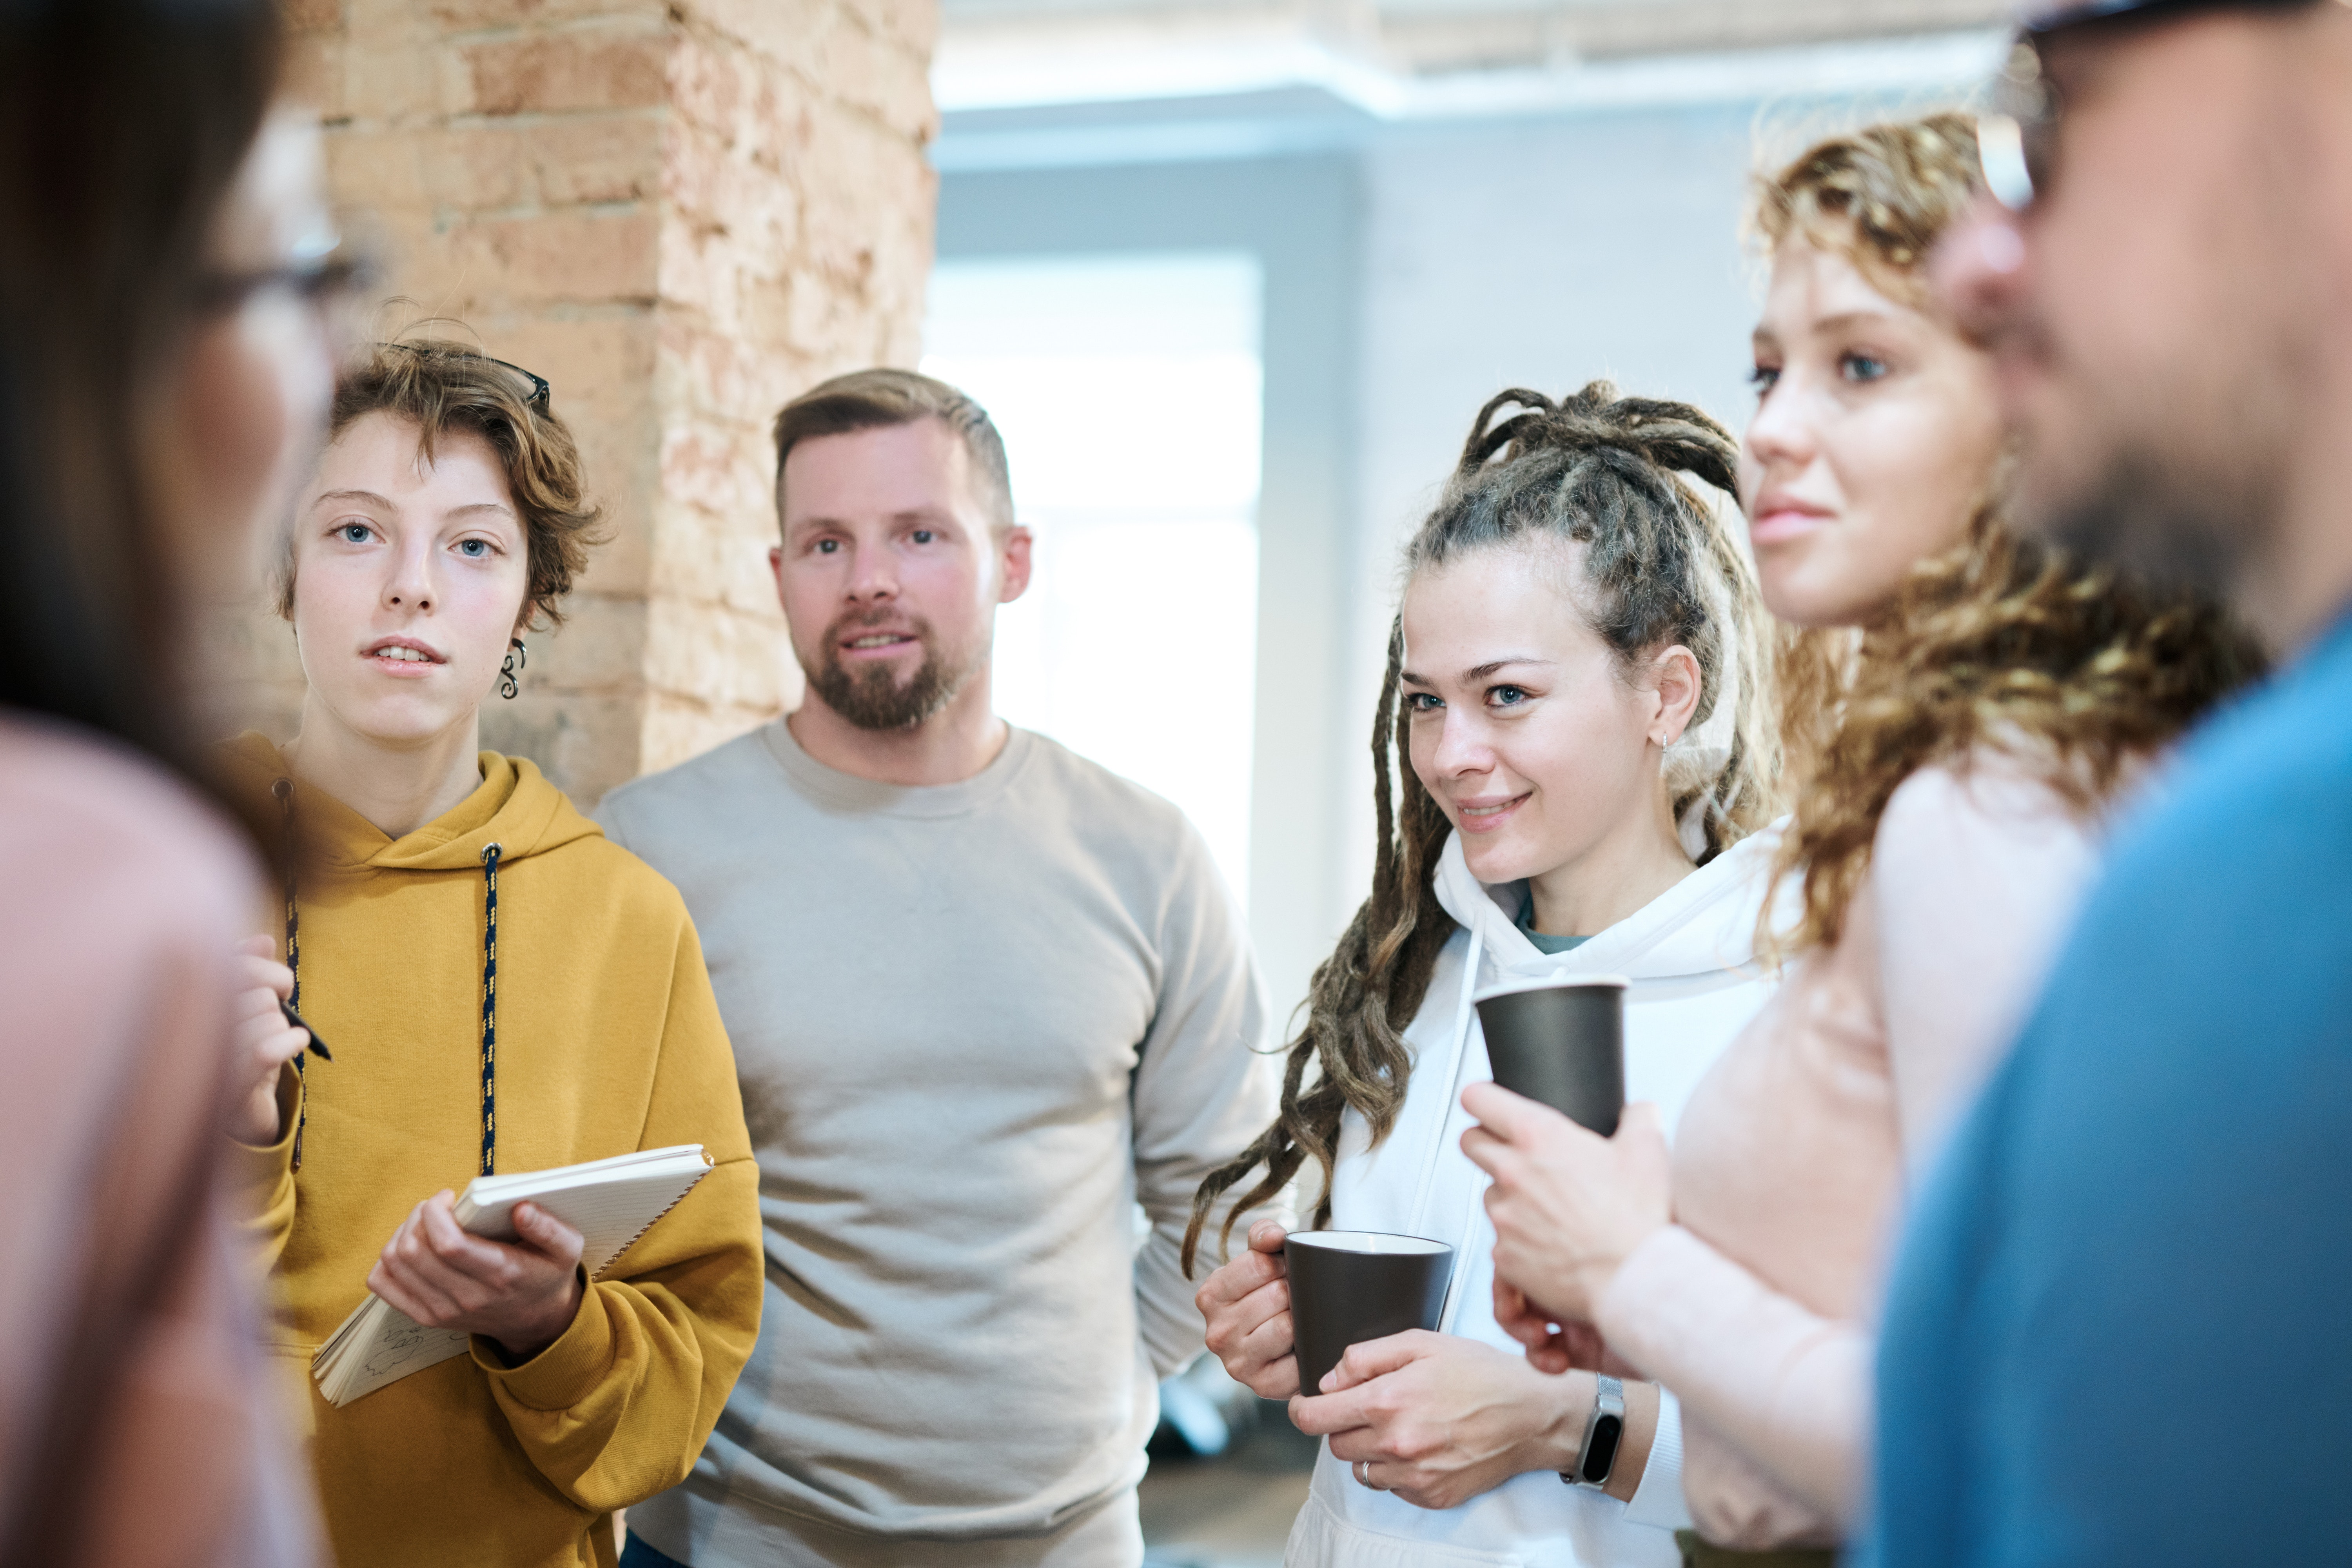 five people listening intently to someone speak in office